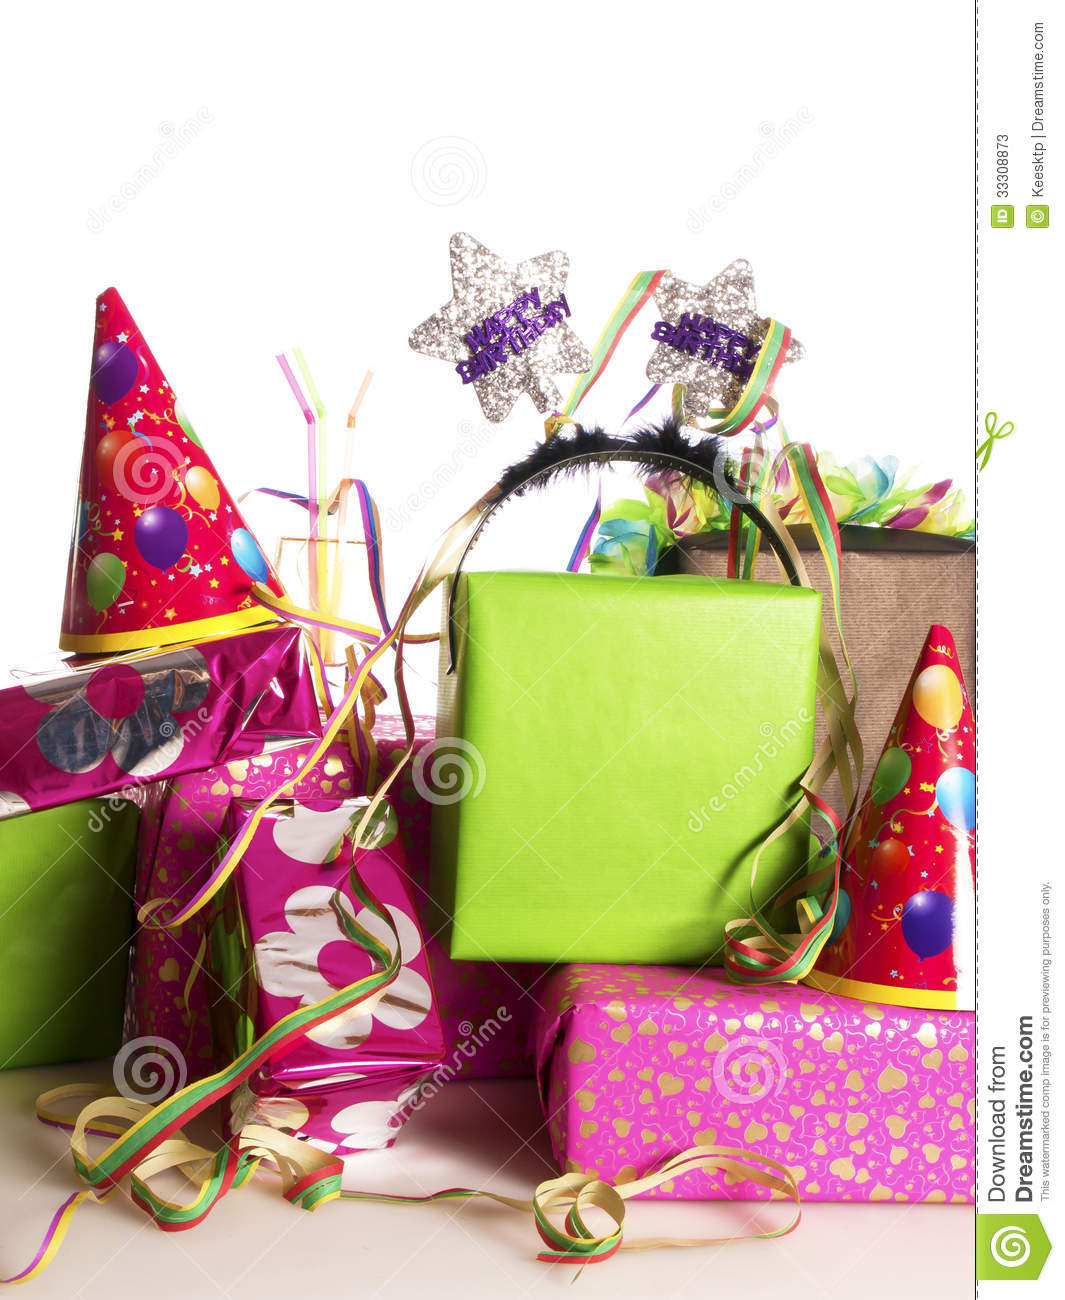 Colorful Birthday Presents Stock Image. Image Of White